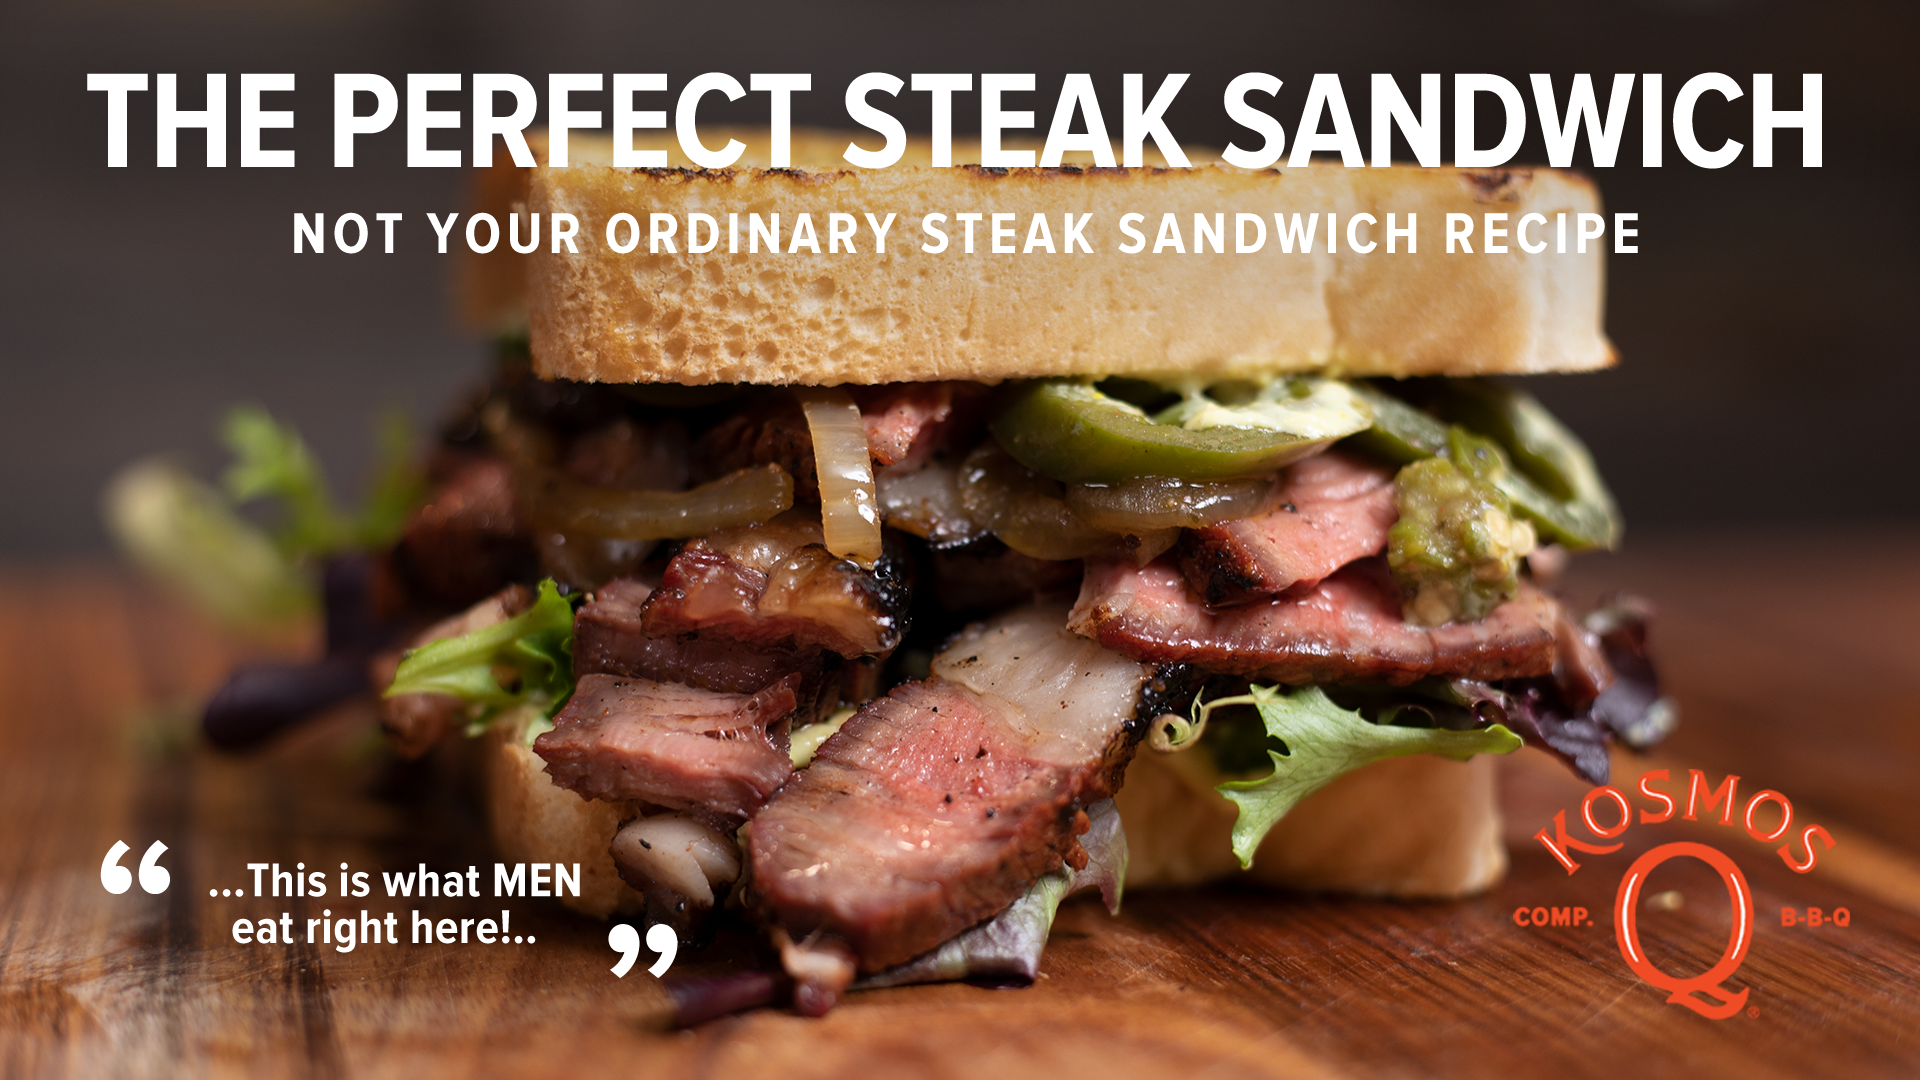 The Perfect Steak Sandwich For Men